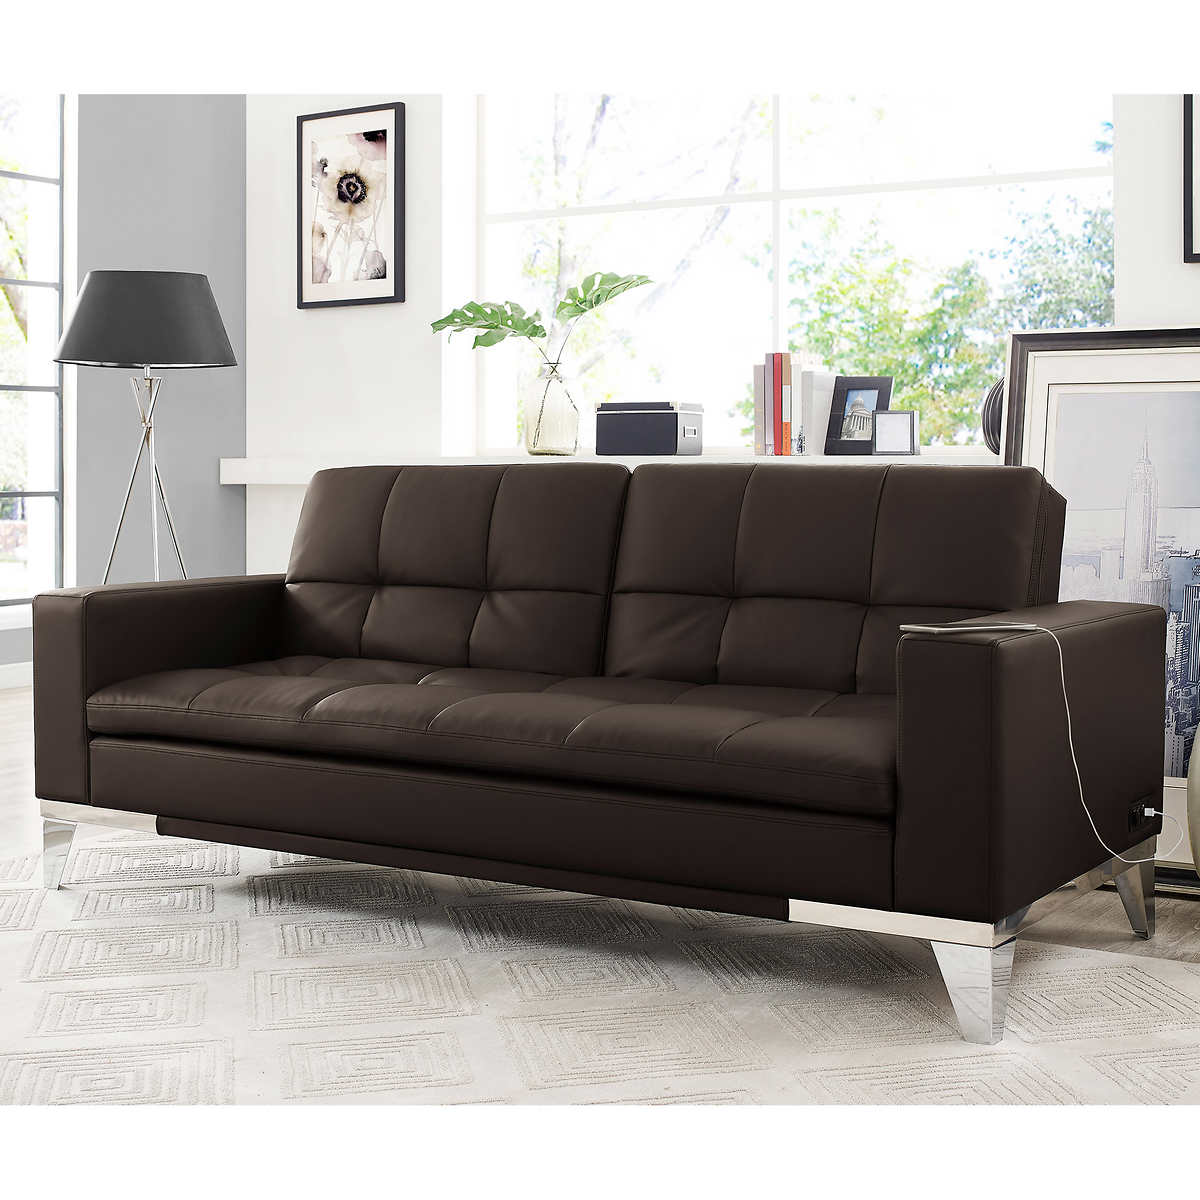 Brooklyn Beautyrest Bonded Leather Euro Lounger